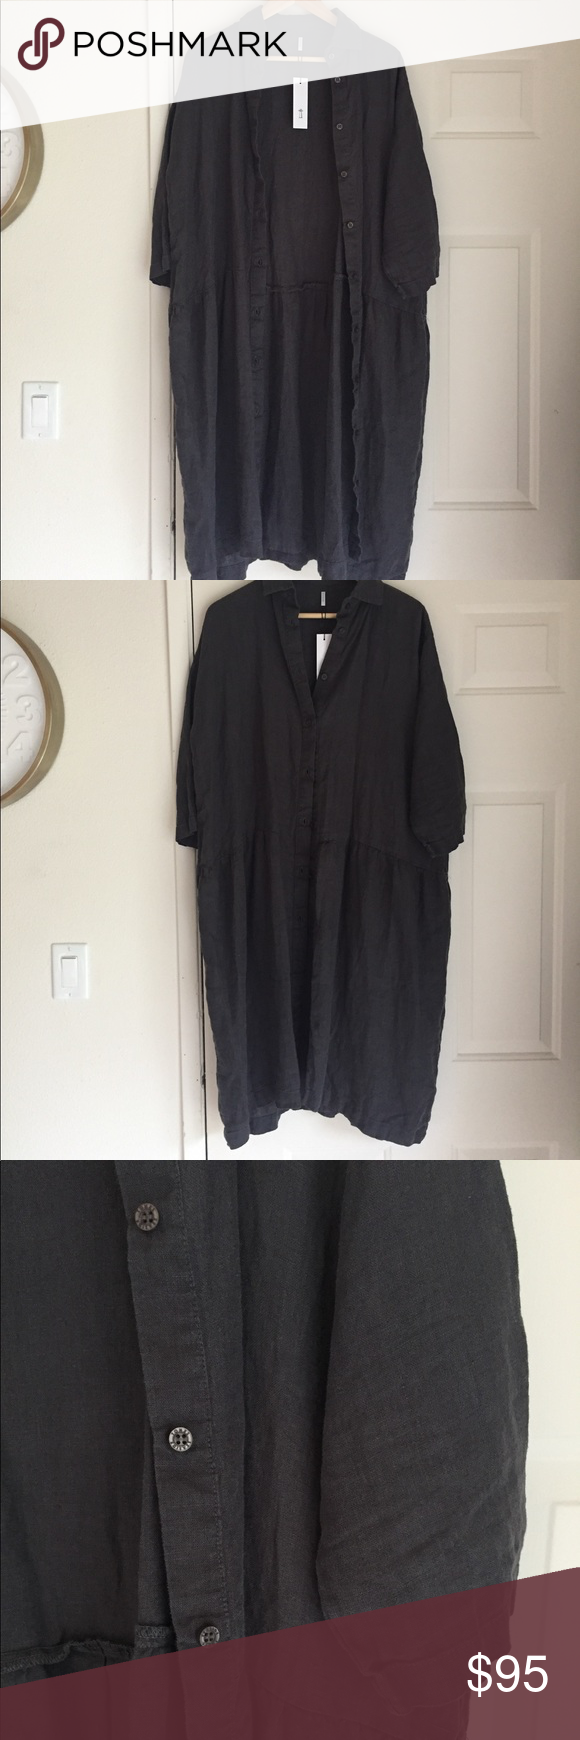 0a157b4638 Seaside Tones Oversized Linen Dress - Grey NWT - never worn or washed. Made  from 100% Baltic Linen Oversized - ones size fits all Measurements  Hips   51